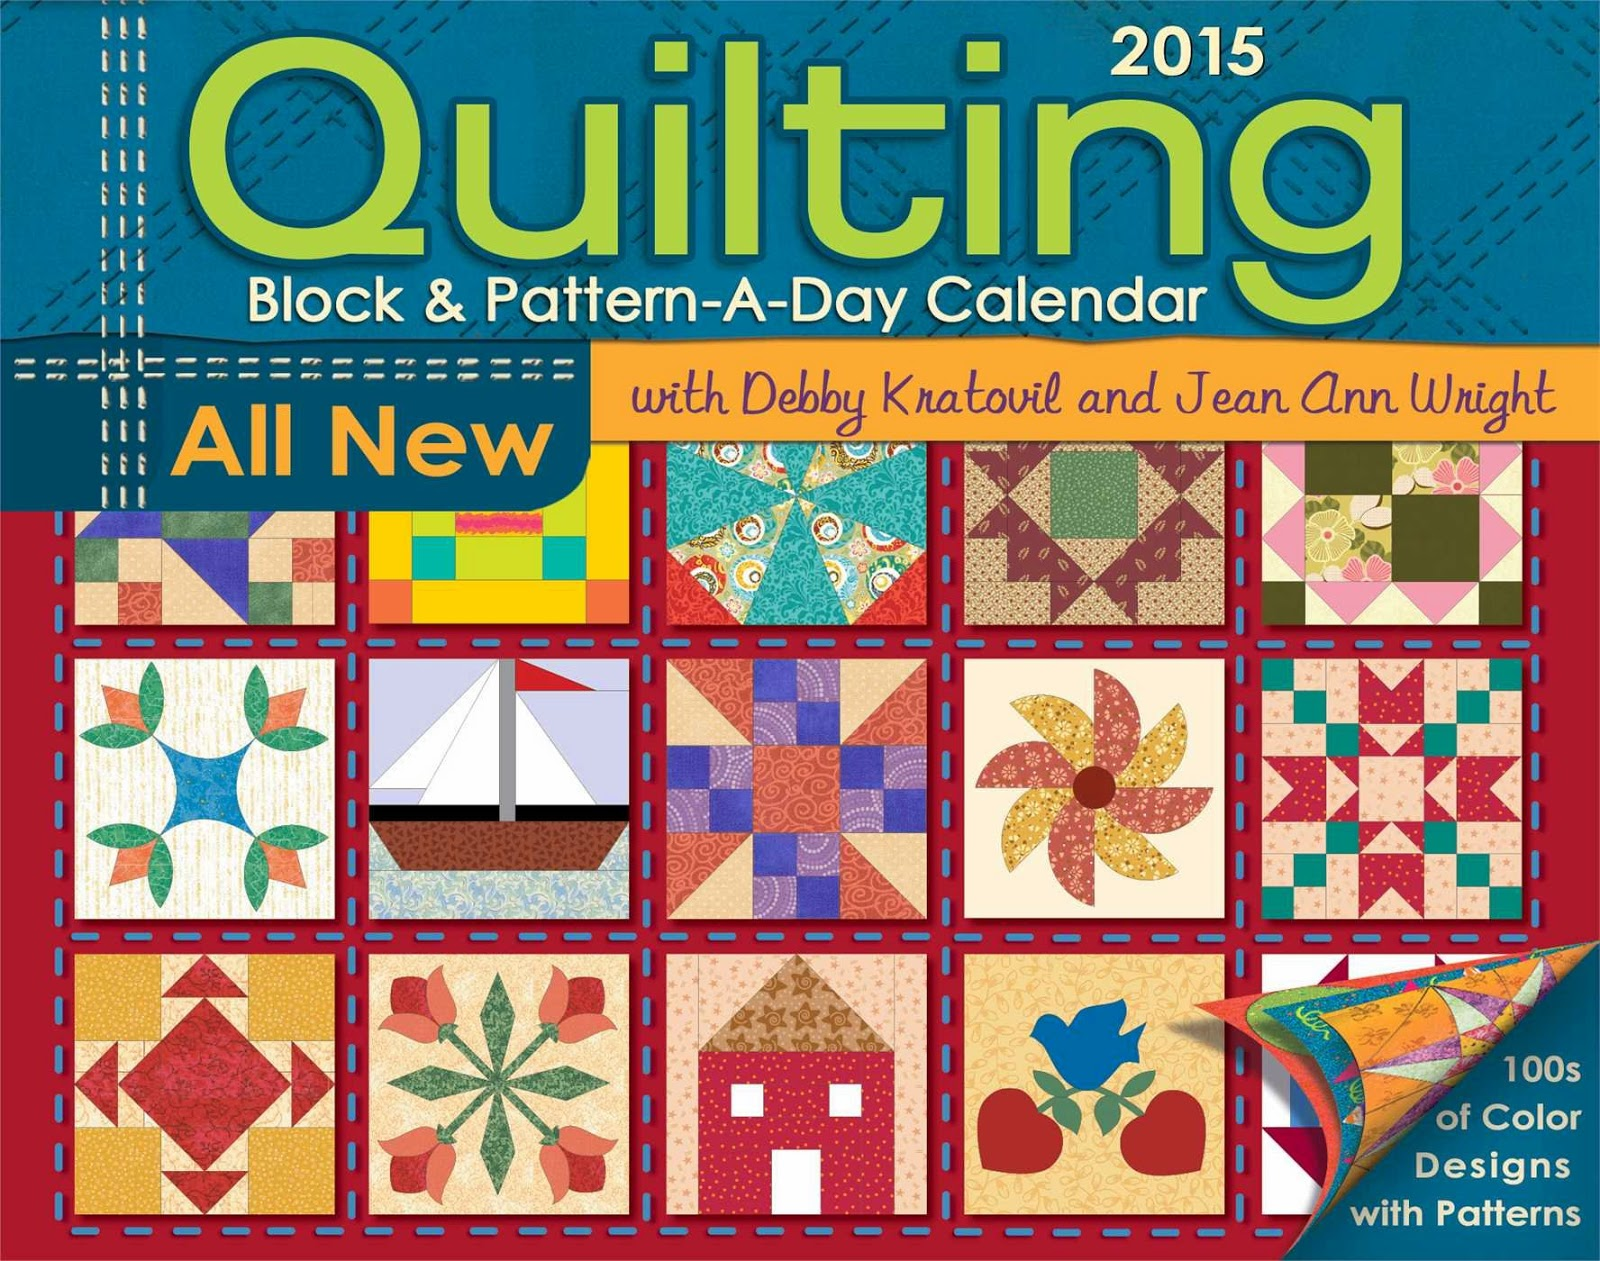 Quilt Wall Calendar 2014 Craft Quilt Fair Brisbane Craft Quilt Fair Brisbane Quilting Block And Pattern A Day 2015 Calendar Best